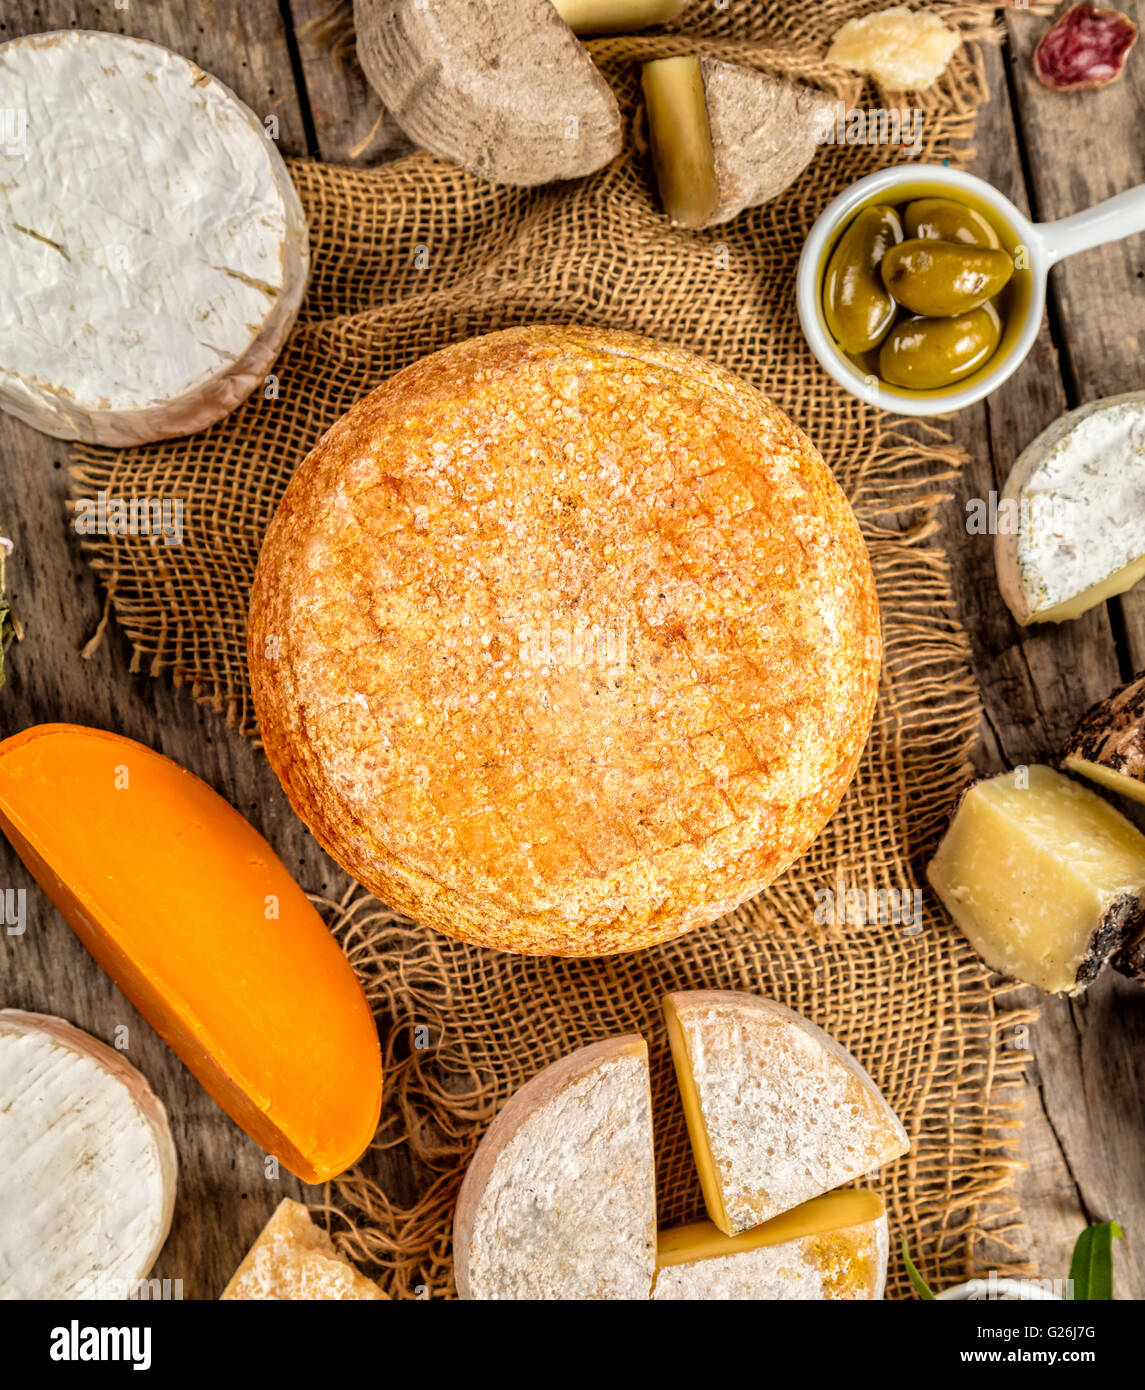 Various kind of traditional cheese and delicacy suitable for wine, placed on wood, shot from high angle view. - Stock Image